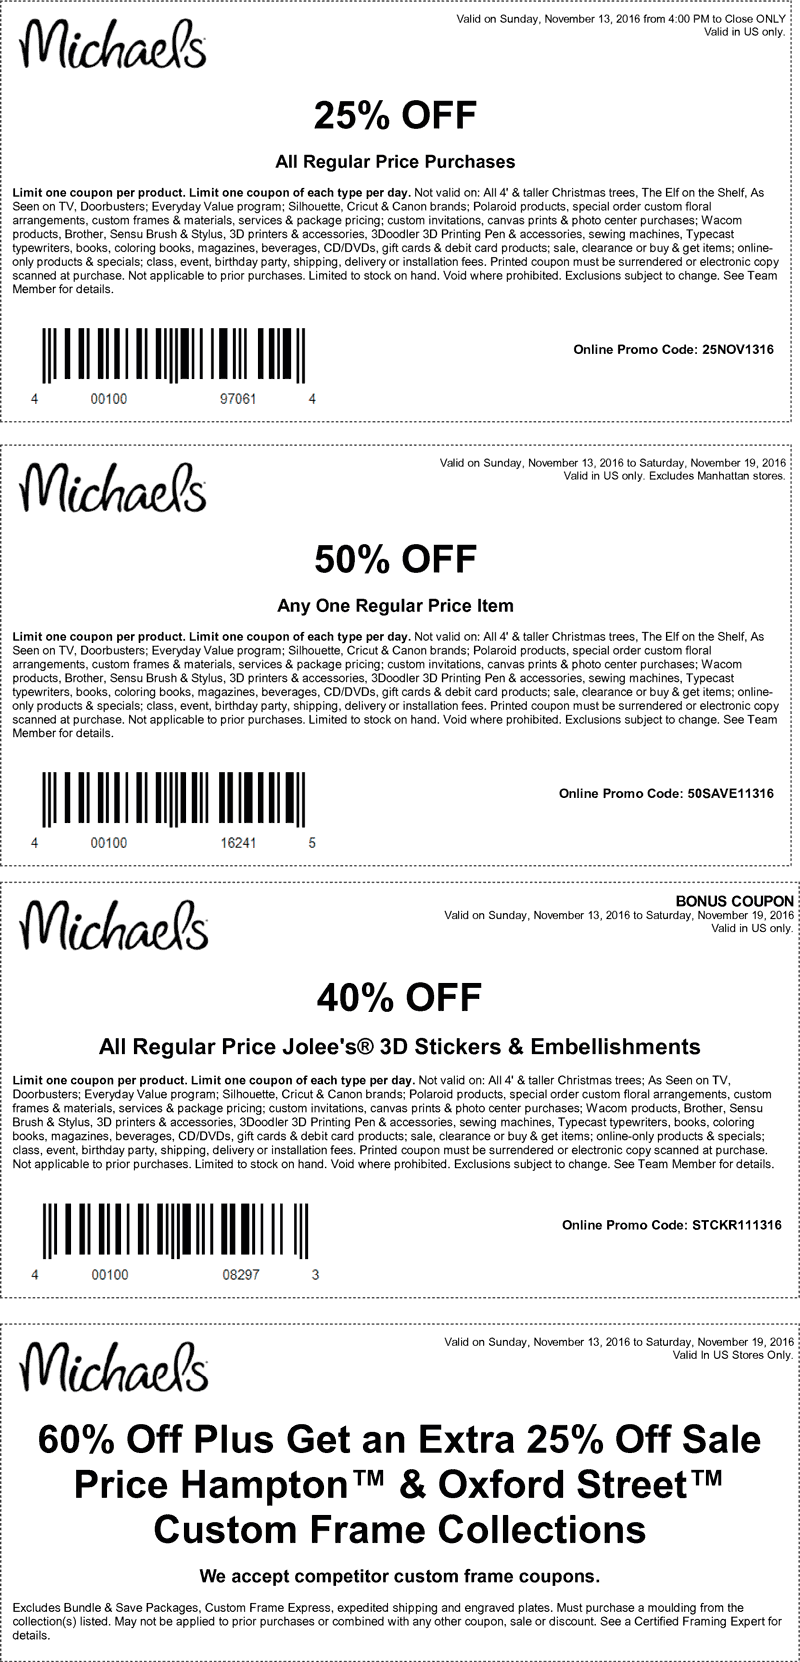 Michaels Coupon October 2018 50% off a single item & more at Michaels, or online via promo code 50SAVE11316